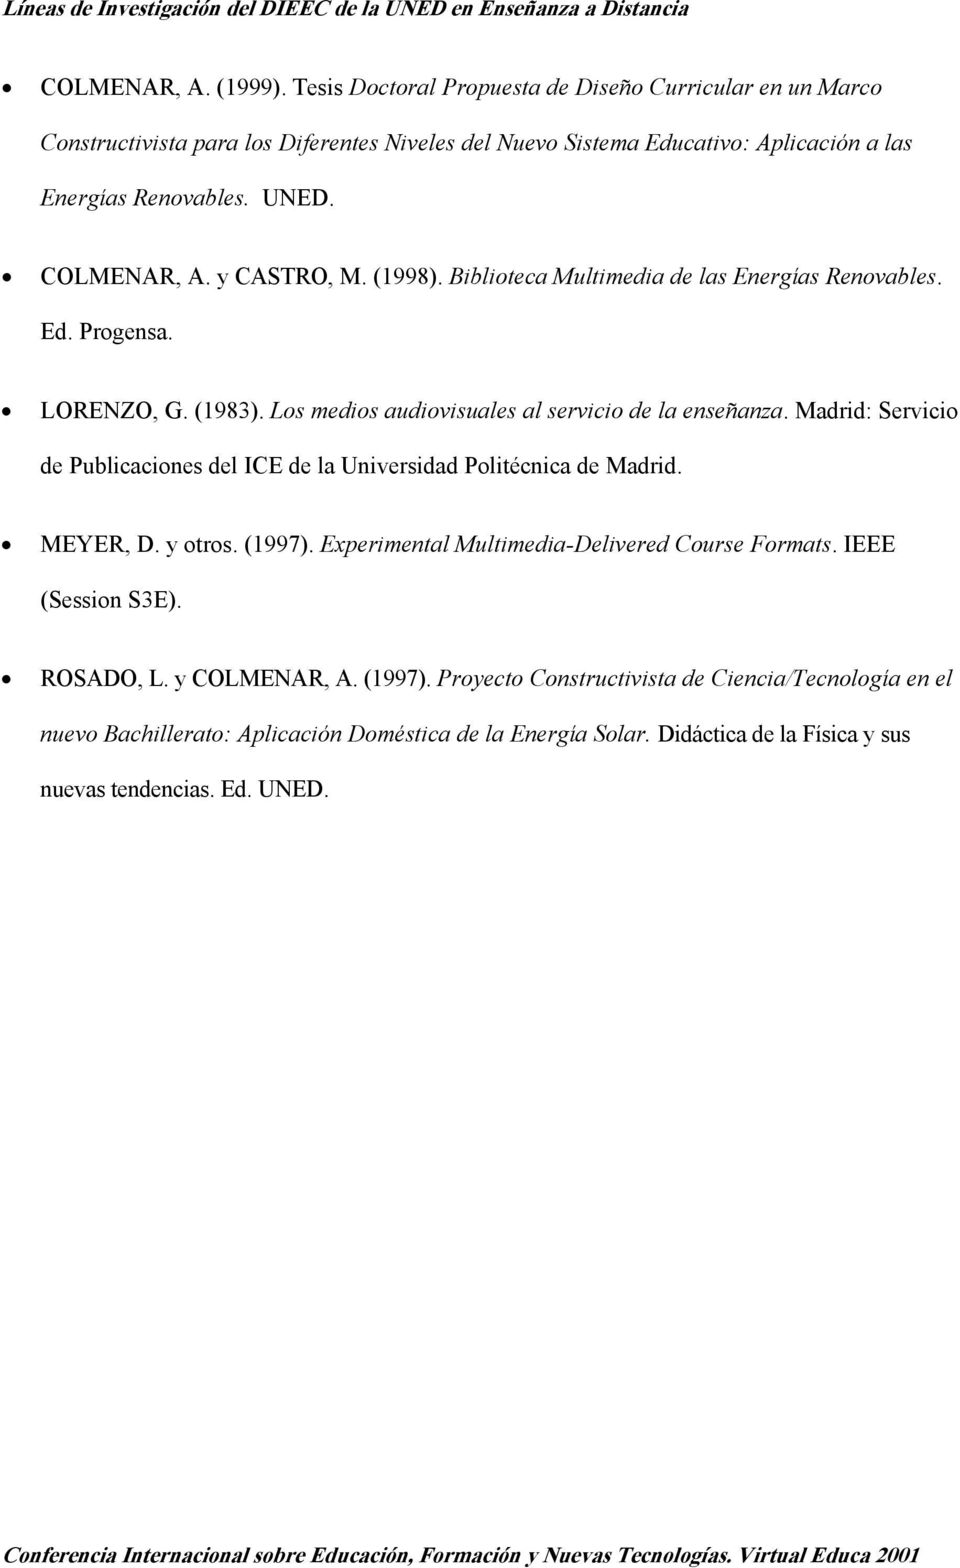 Madrid: Servicio de Publicaciones del ICE de la Universidad Politécnica de Madrid. MEYER, D. y otros. (1997). Experimental Multimedia-Delivered Course Formats. IEEE (Session S3E).